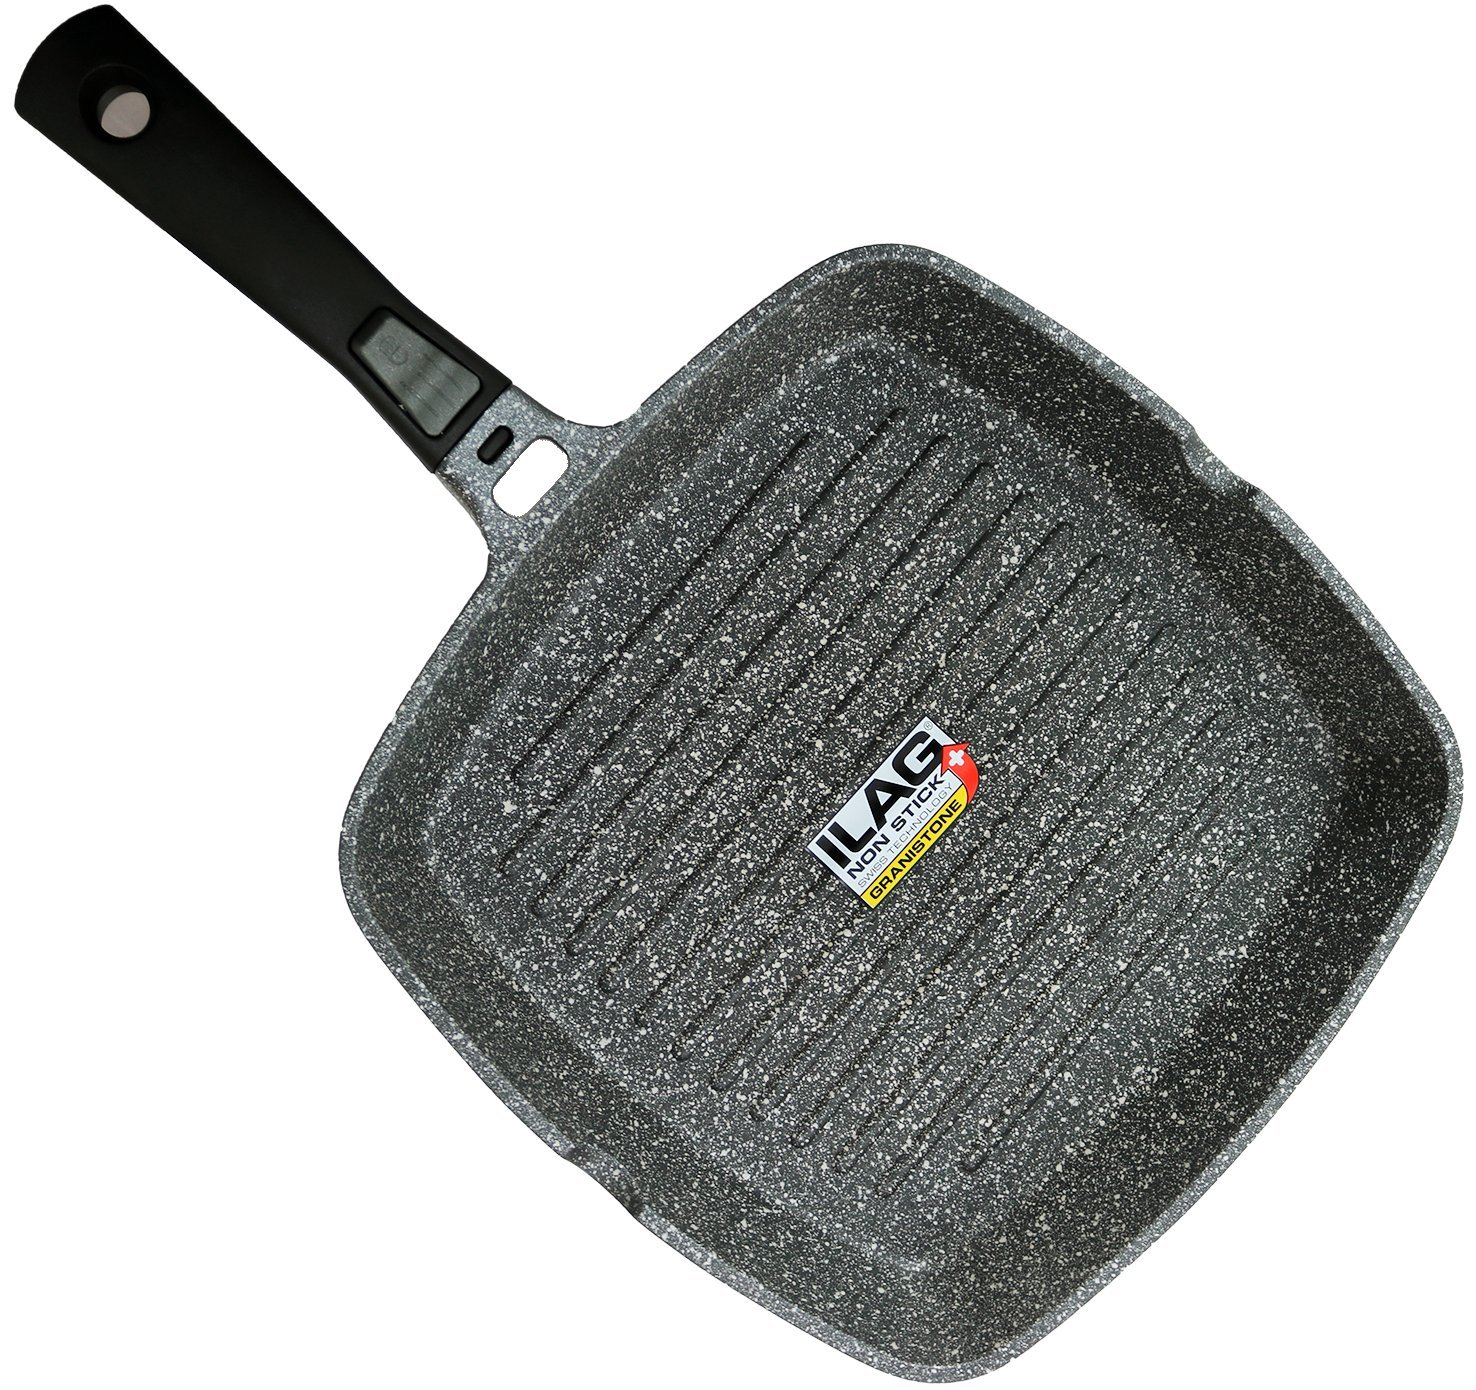 Coninx Grill Pan With Detachable Handle | 100% PFOA Free Square Griddle Pan | Nonstick Cookware for any Heat Source including Induction and Oven | 11-inch | Dishwasher Safe